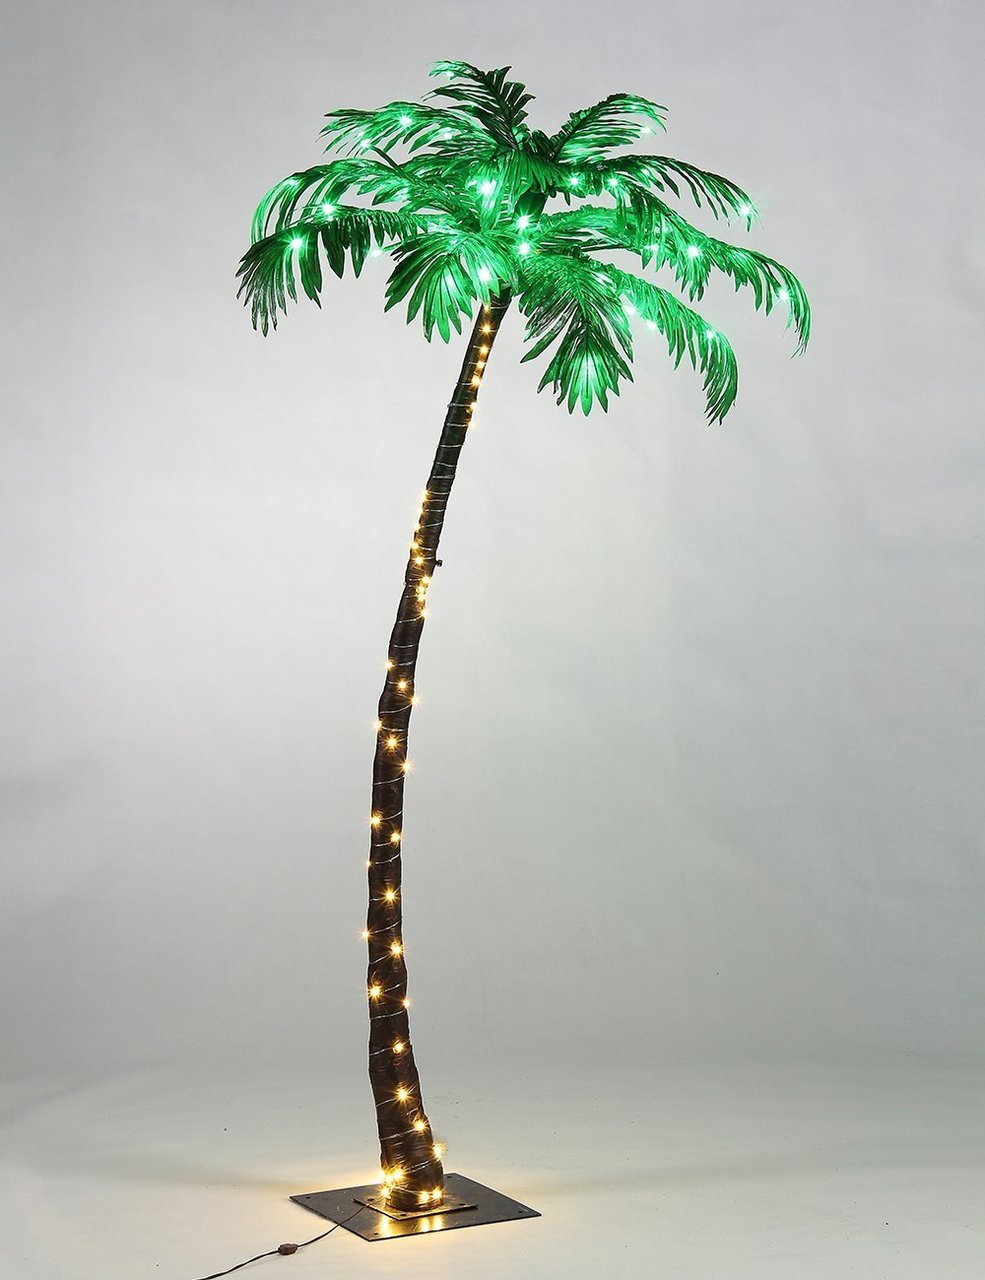 Lighted Palm Tree 5 FT